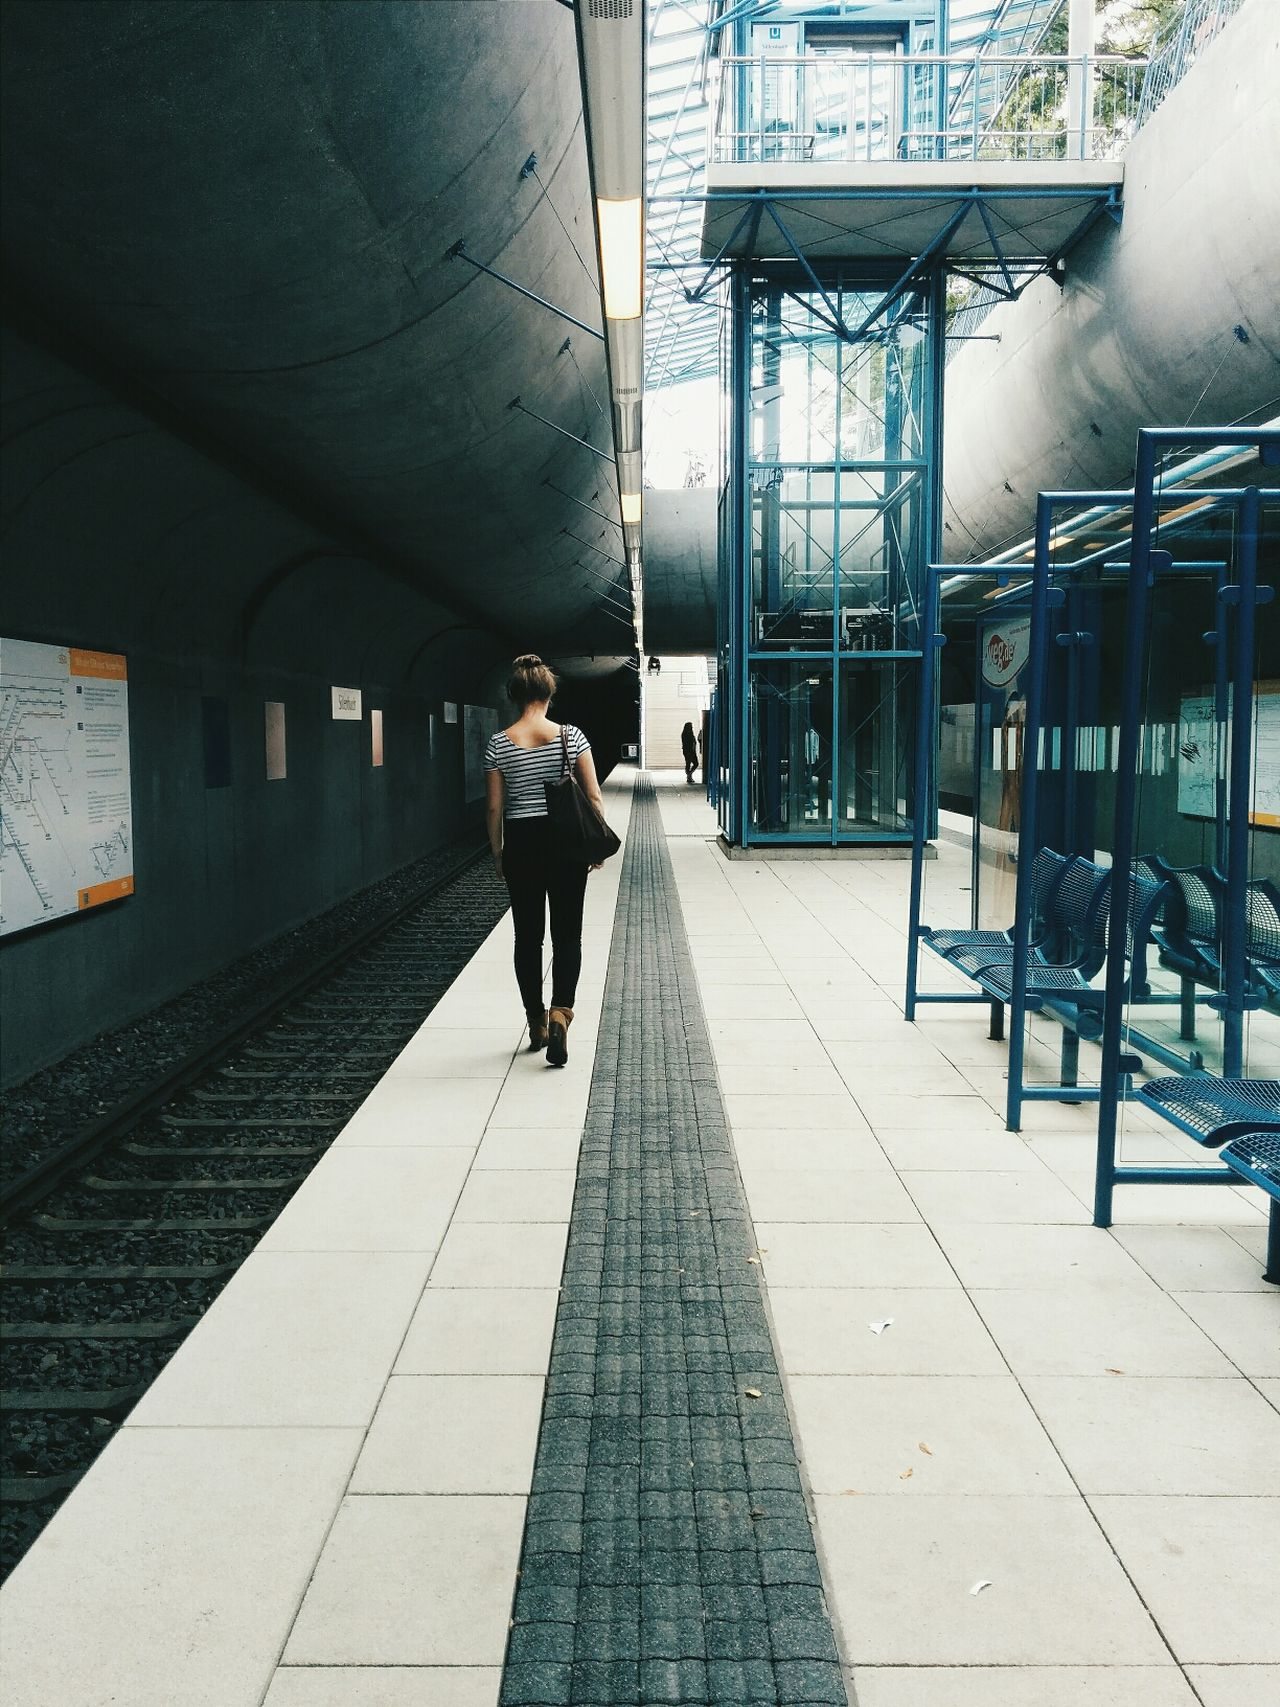 Unterwegs! The Architect - 2014 EyeEm Awards Vscocam Underground Subway